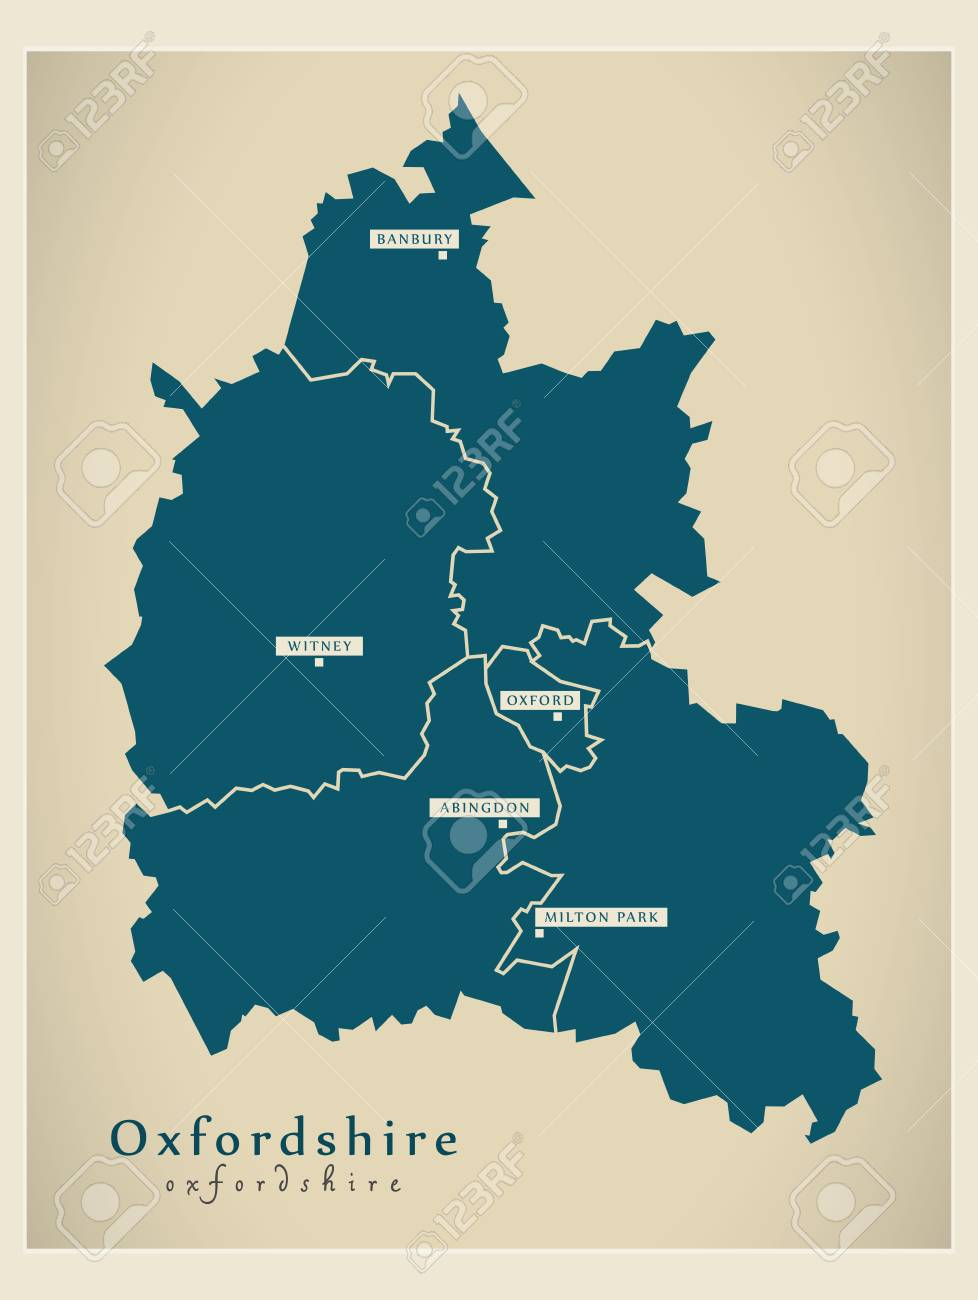 Map Of England Districts.Modern Map Oxfordshire County With Cities And Districts England